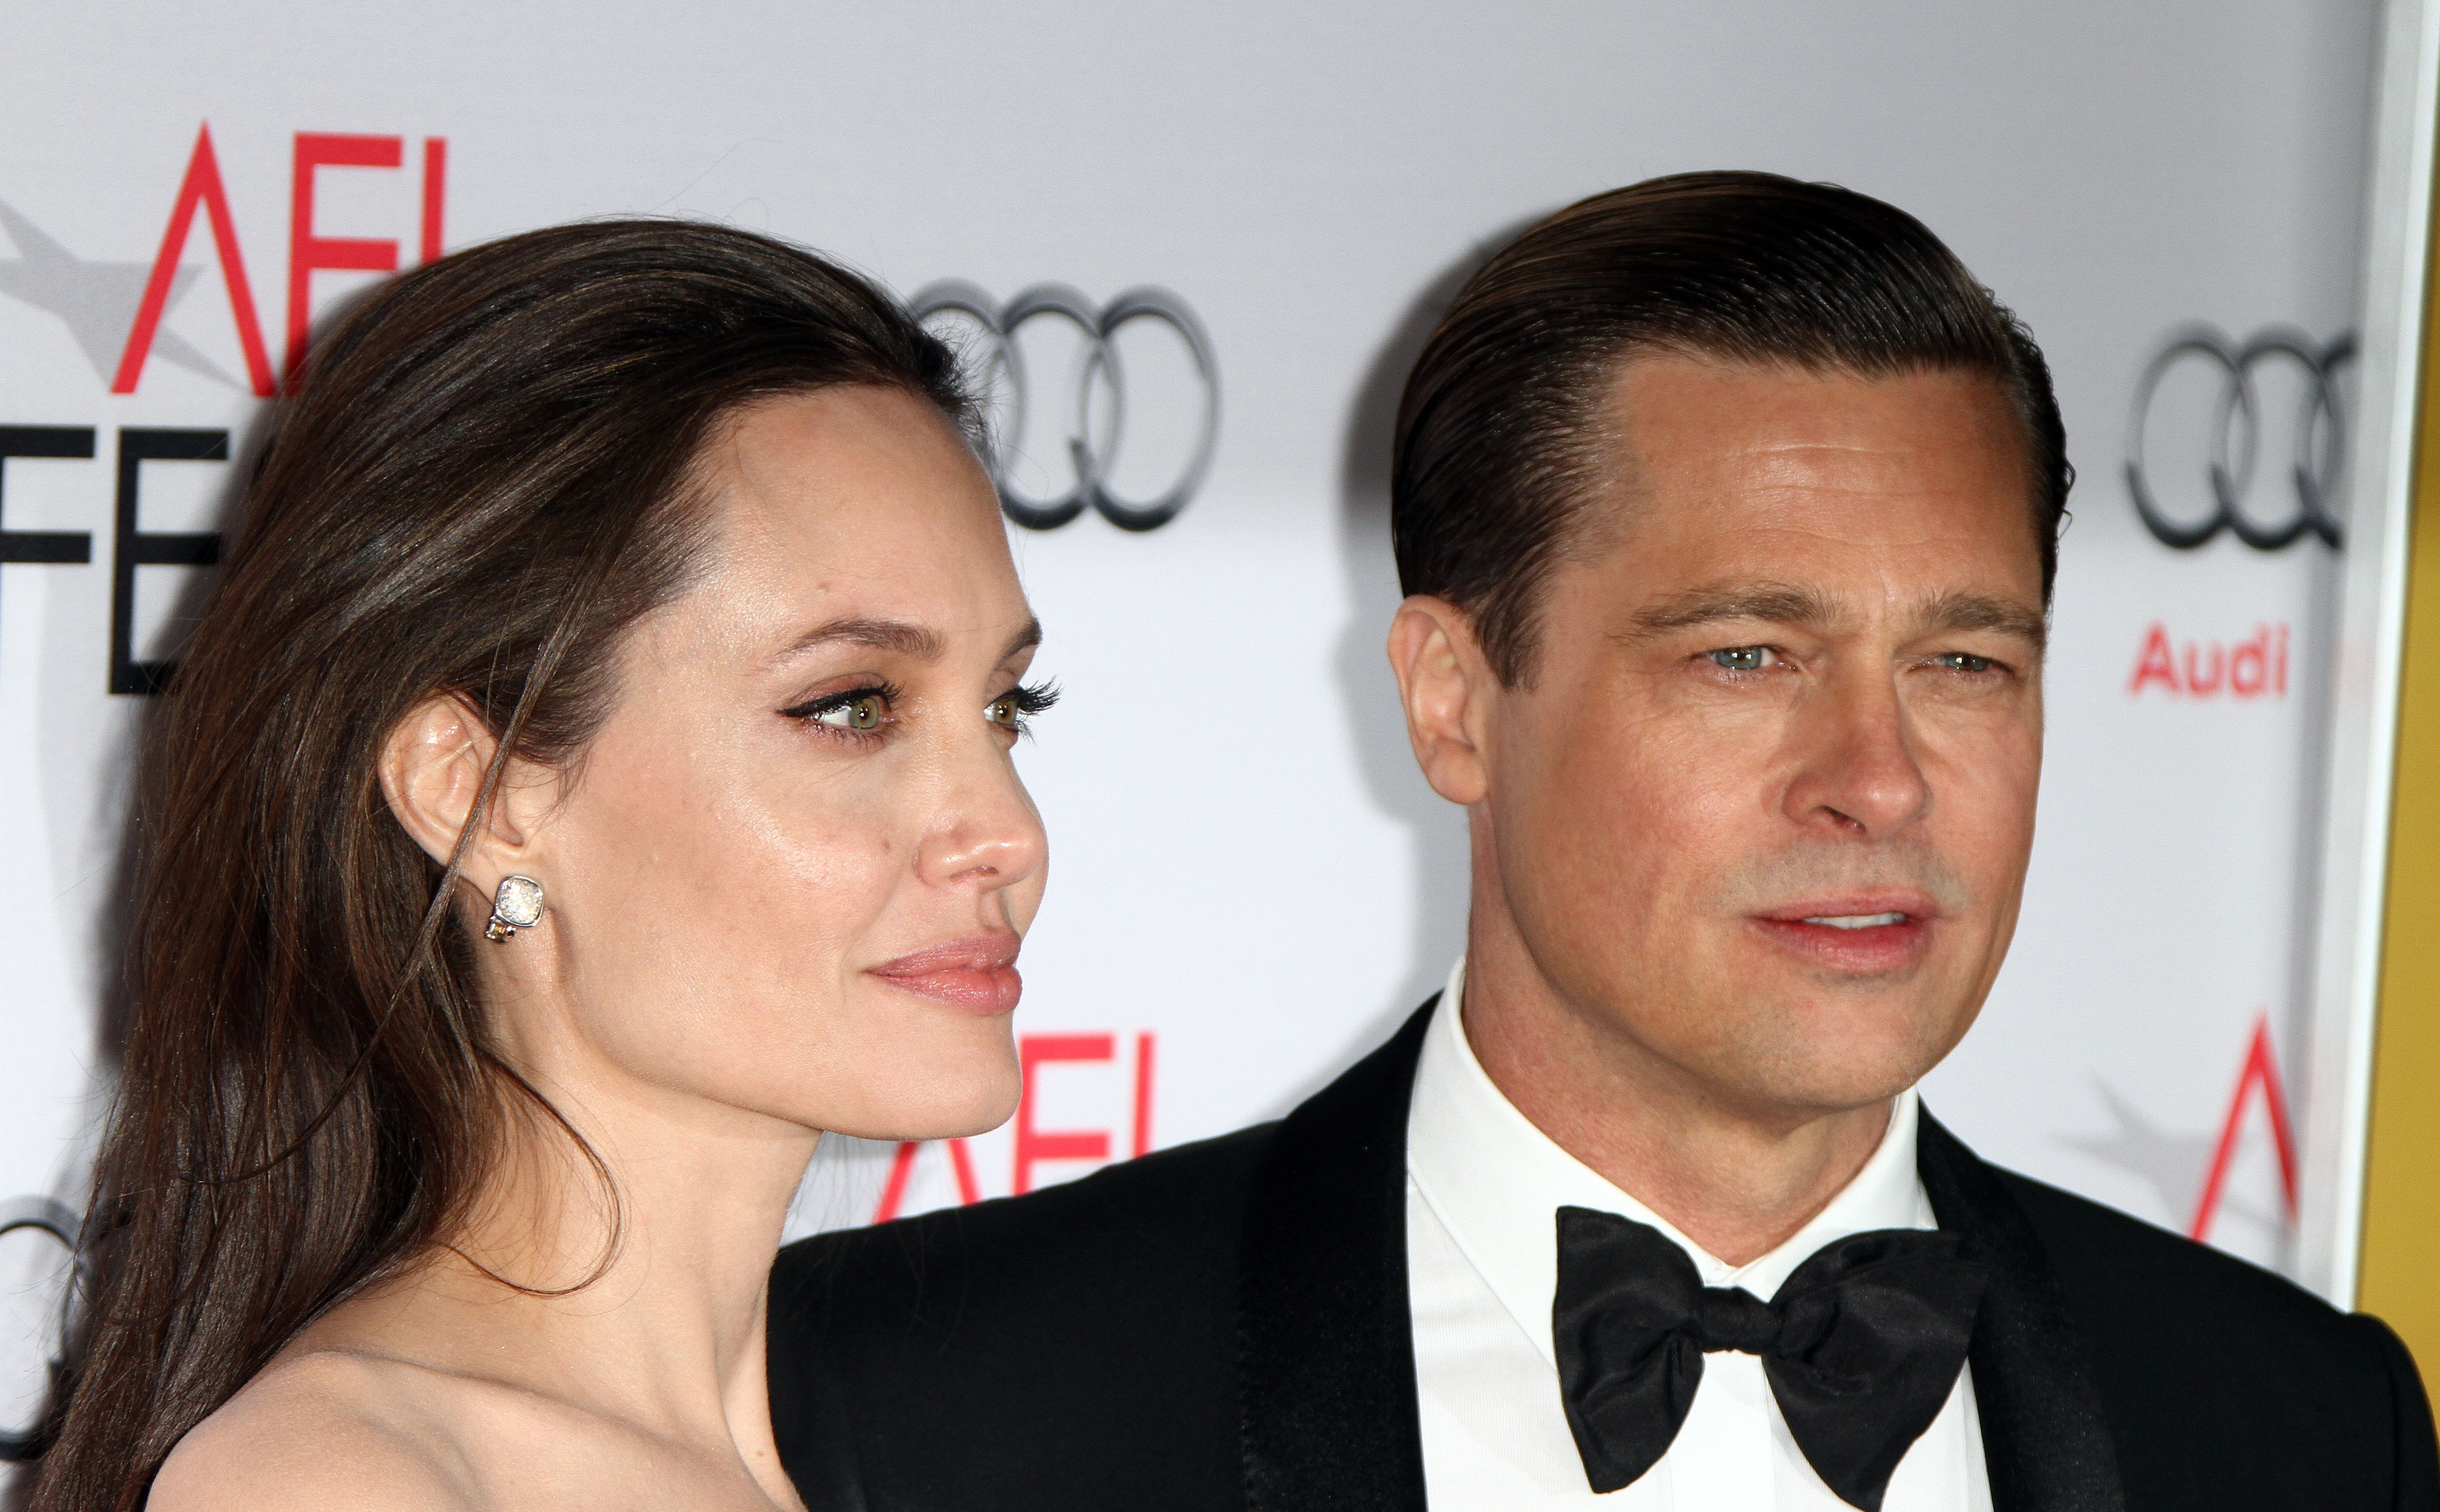 Two 'WITCHES' accused of wrecking Brad's marriage to Angelina